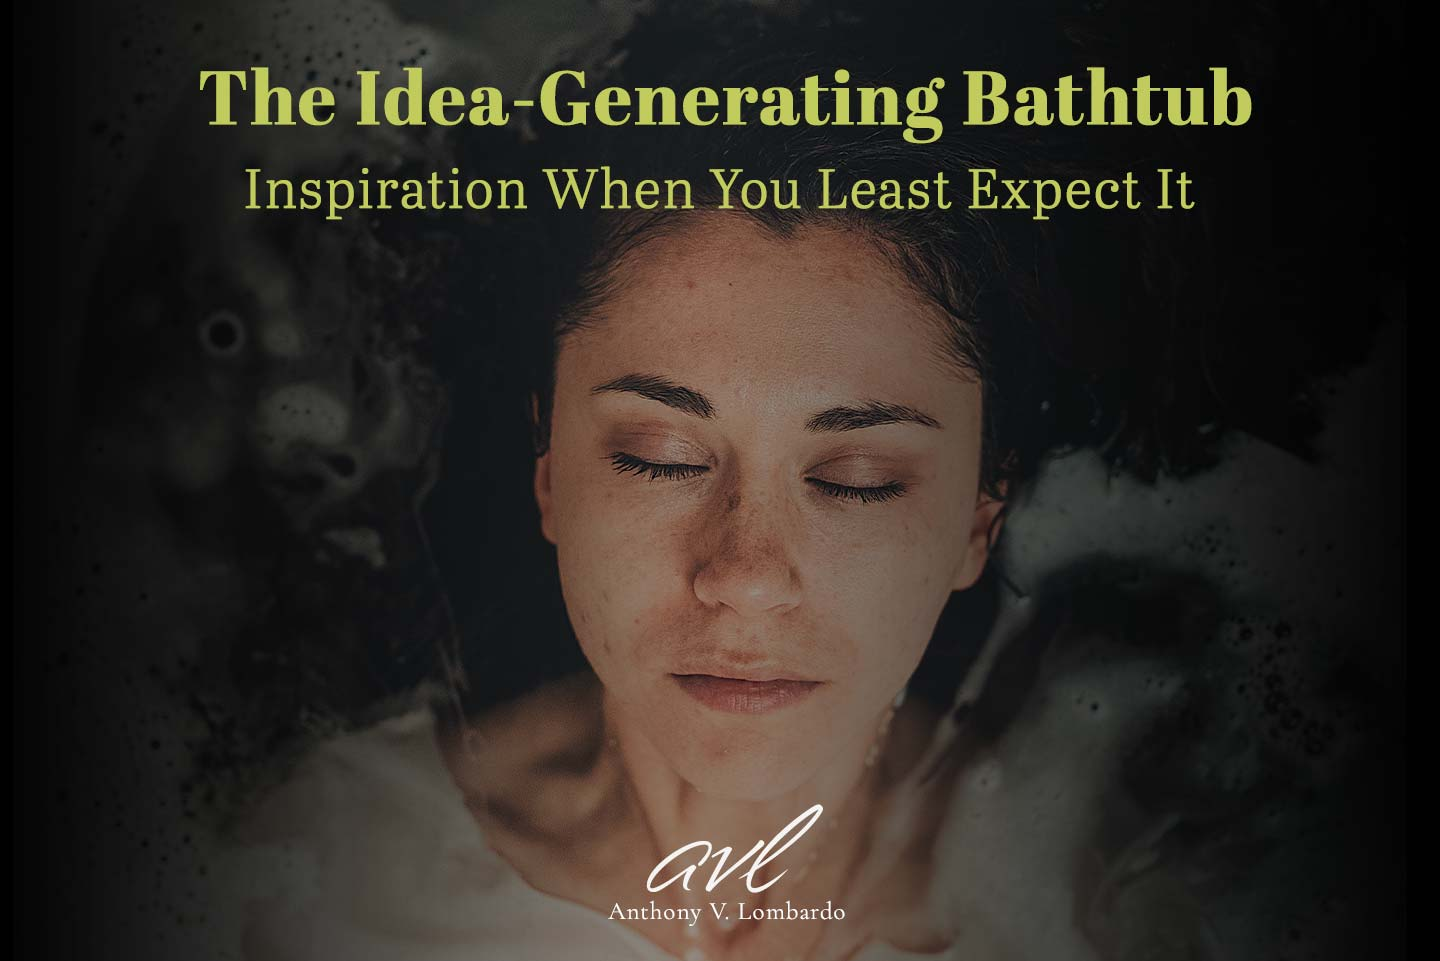 The Idea-Generating Bathtub. Inspiration When You Least Expect It